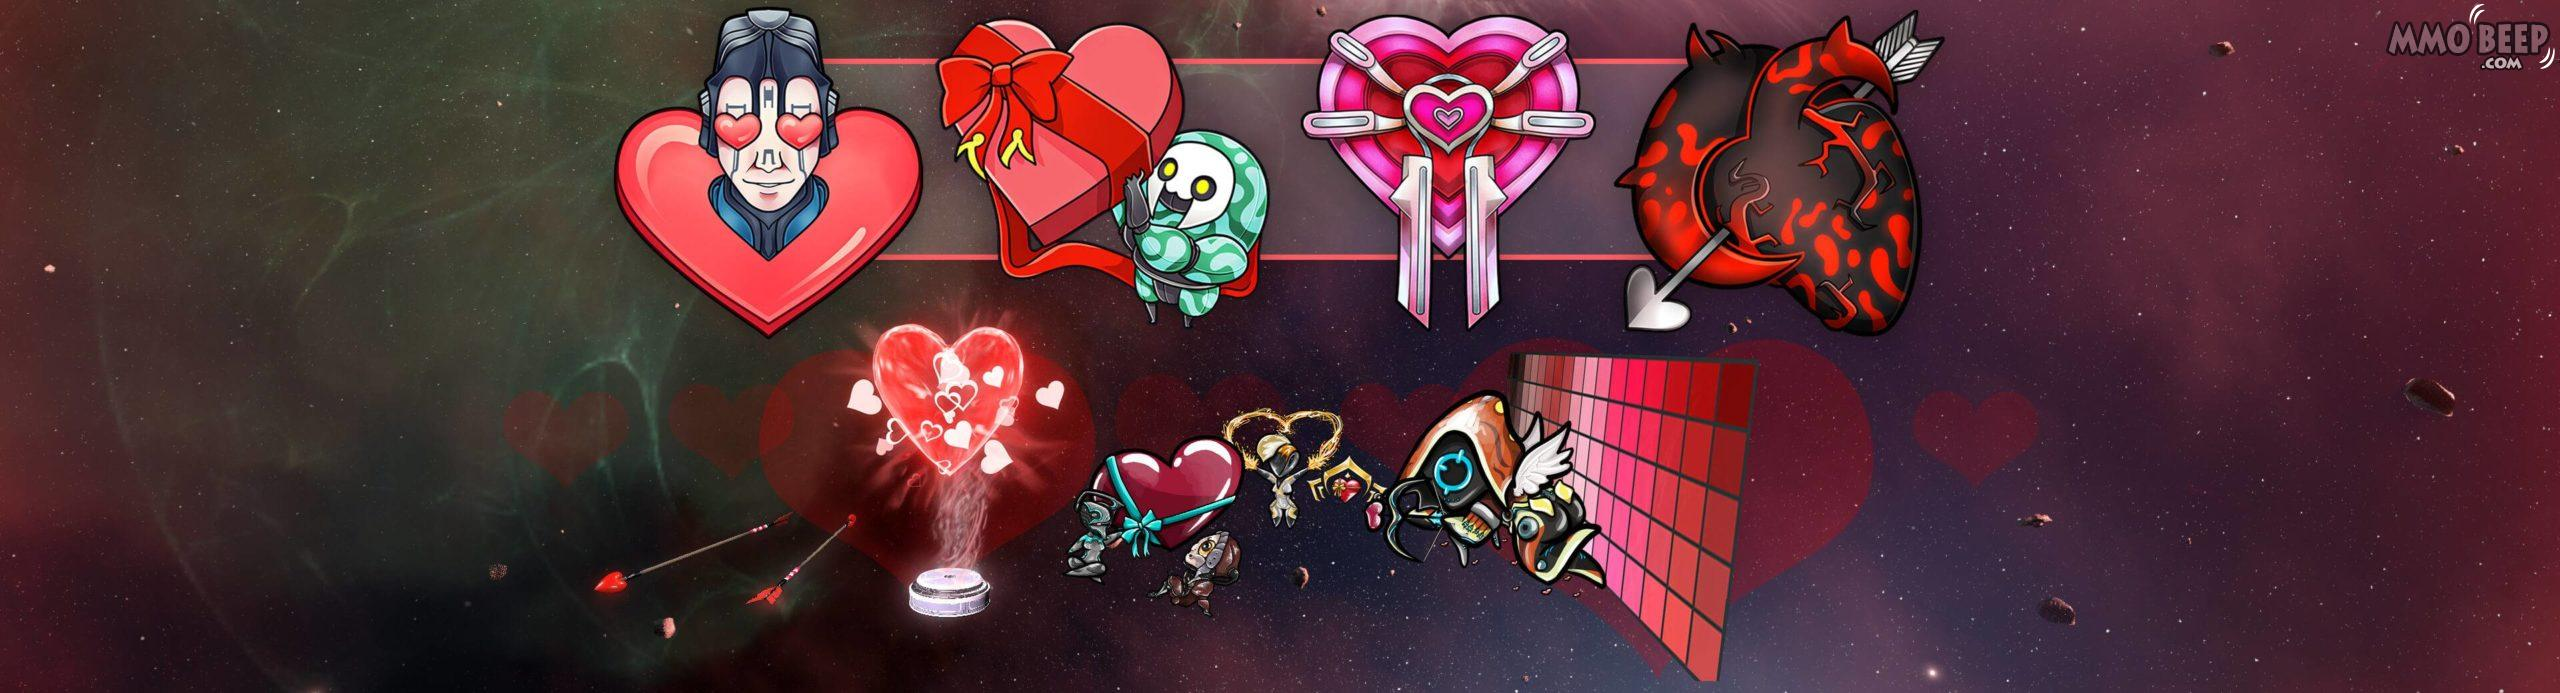 Warframe's Heart of the Ordis Valentines Day Event Returns